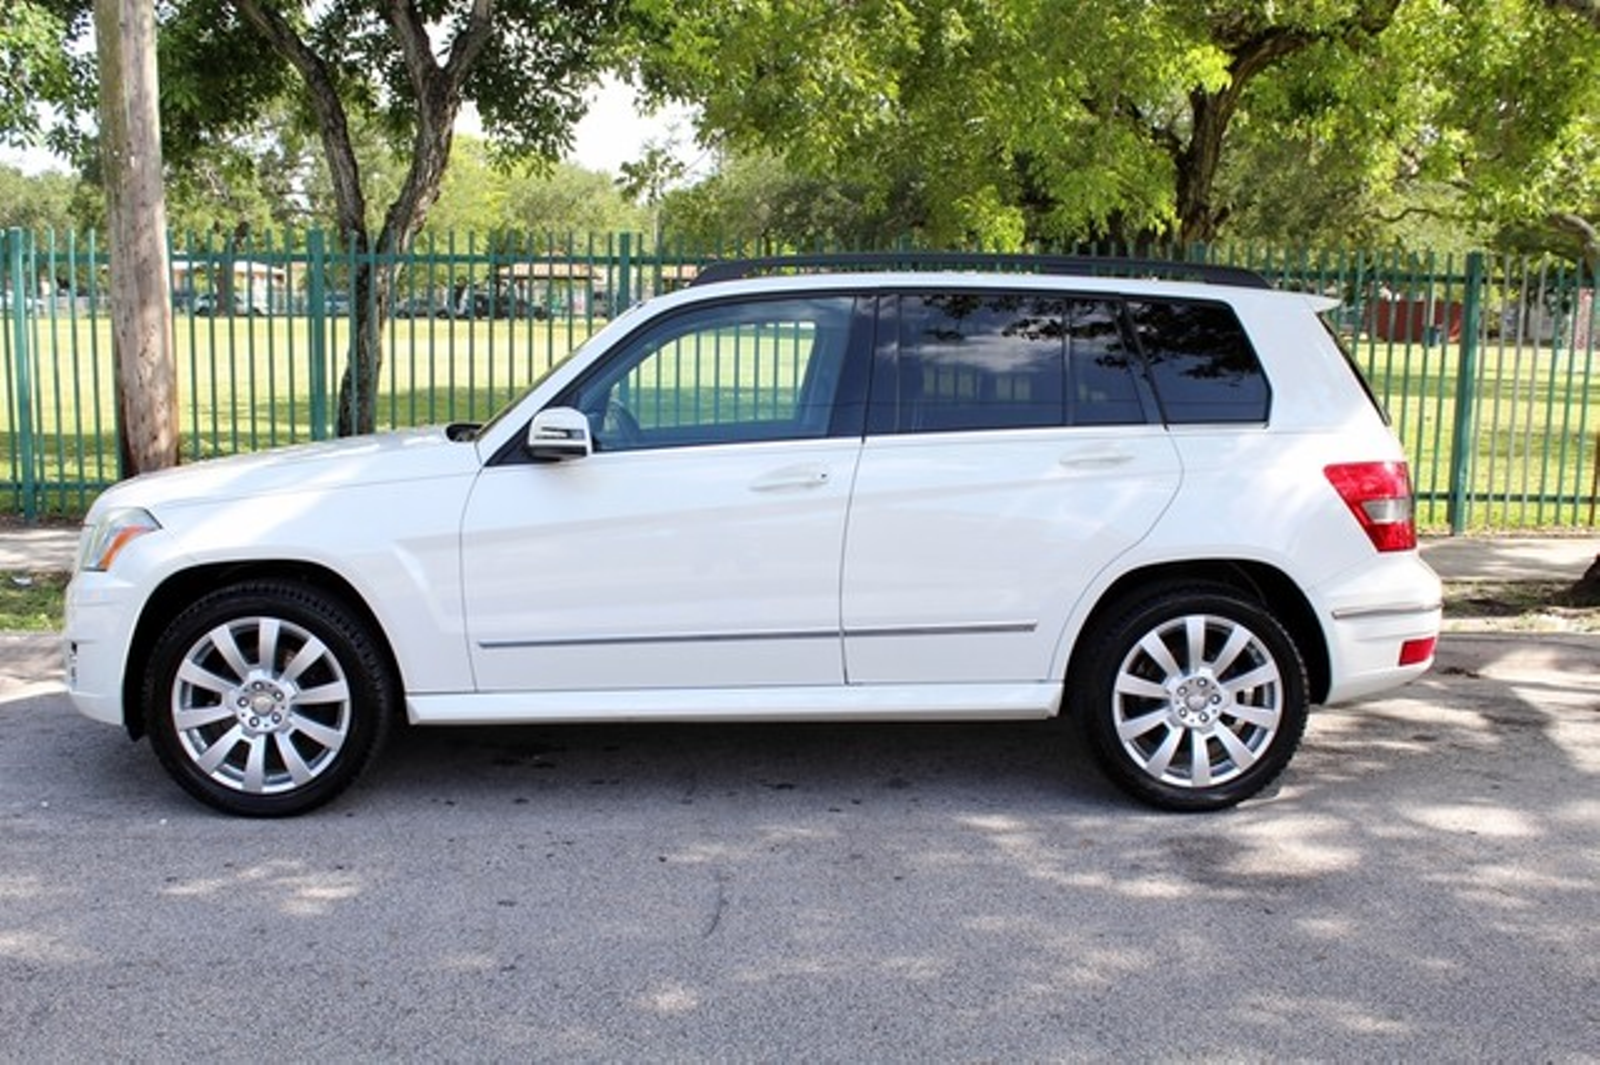 2010 mercedes benz glk350 350 4matic city florida the for 2010 mercedes benz glk